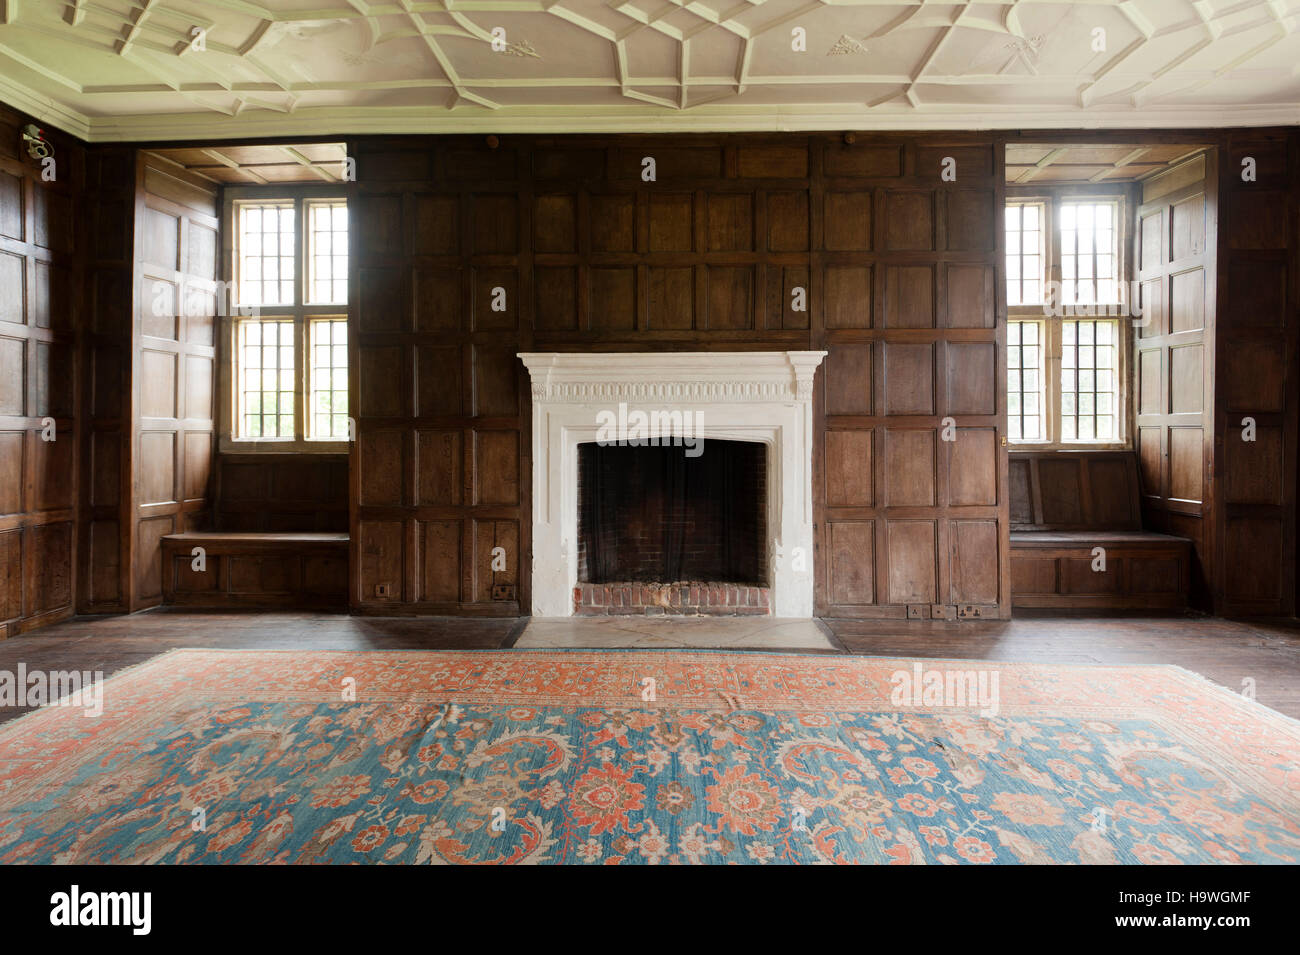 The Great Parlour at Avebury Manor, Wiltshire - Stock Image